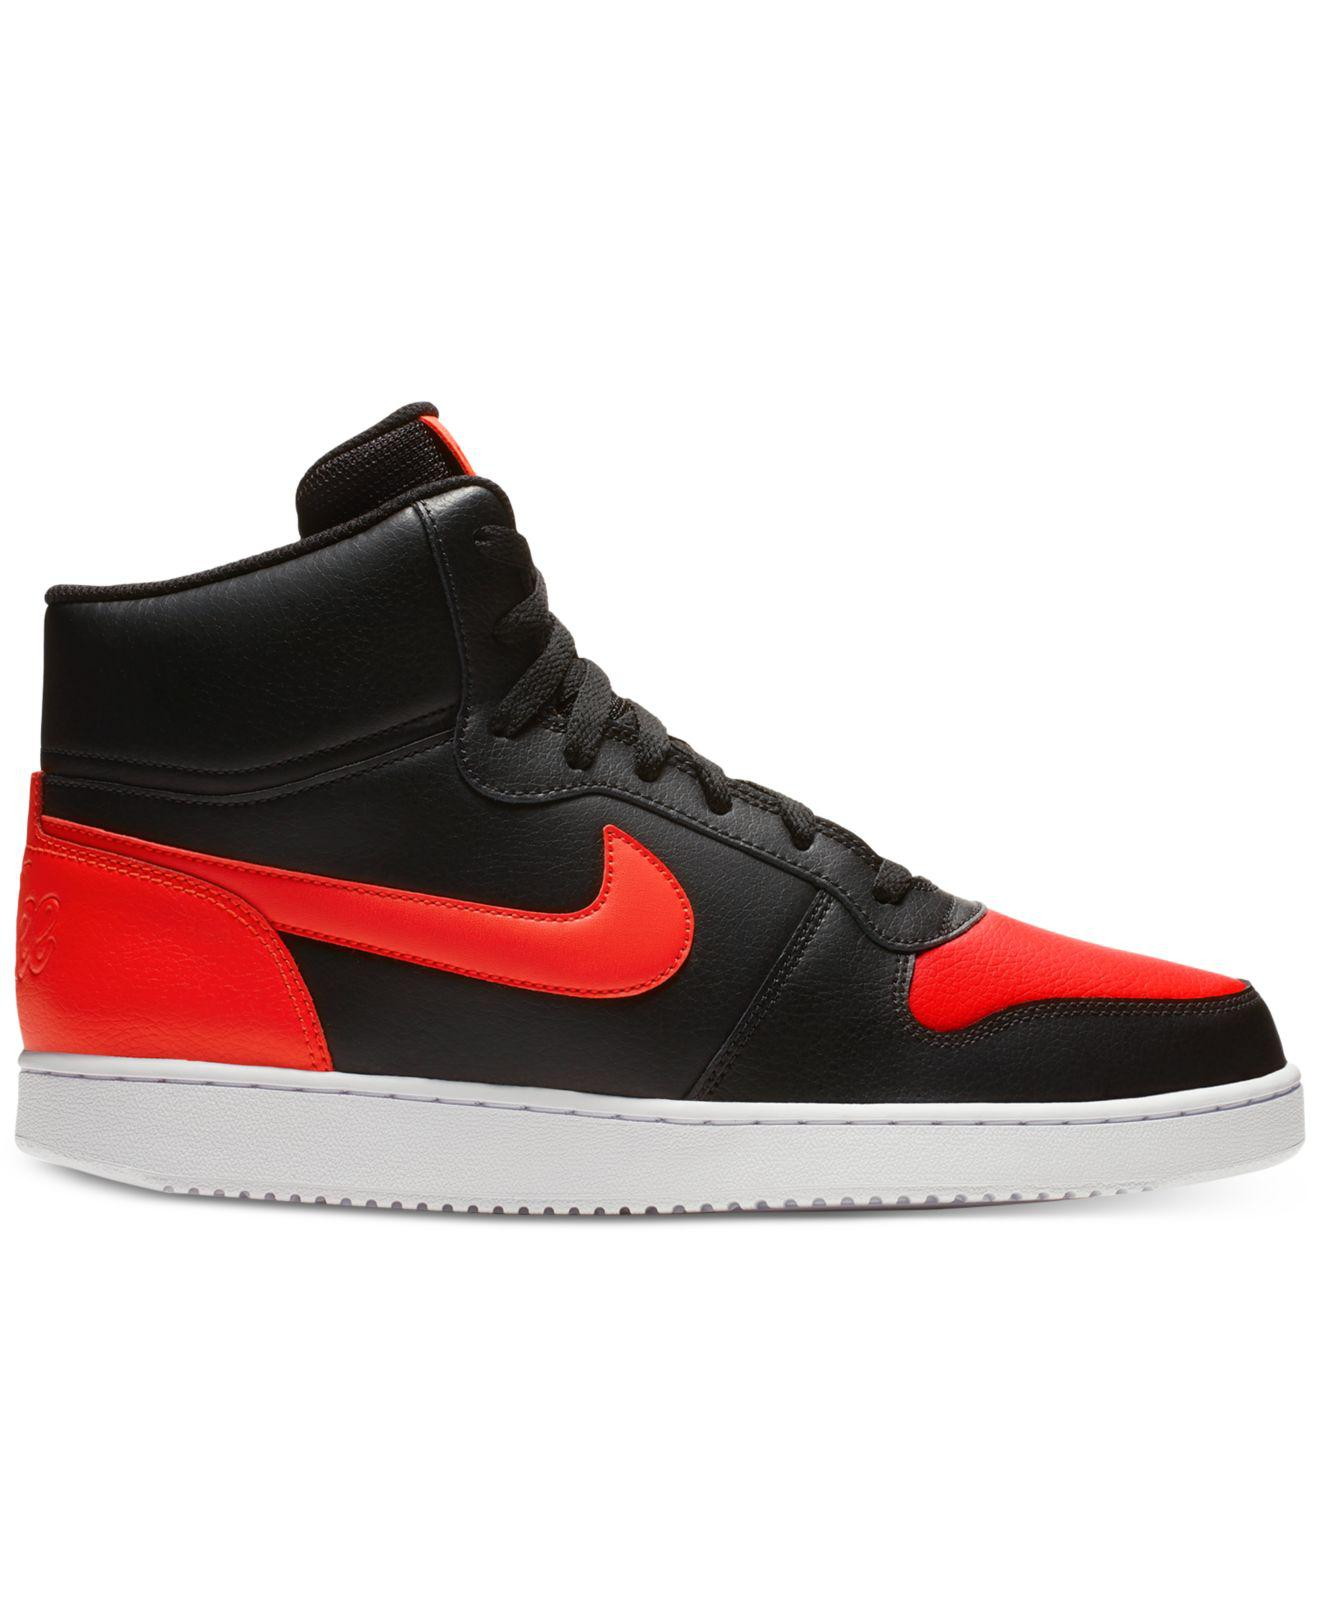 5af3785c78 Lyst - Nike Ebernon Mid Casual Sneakers From Finish Line for Men